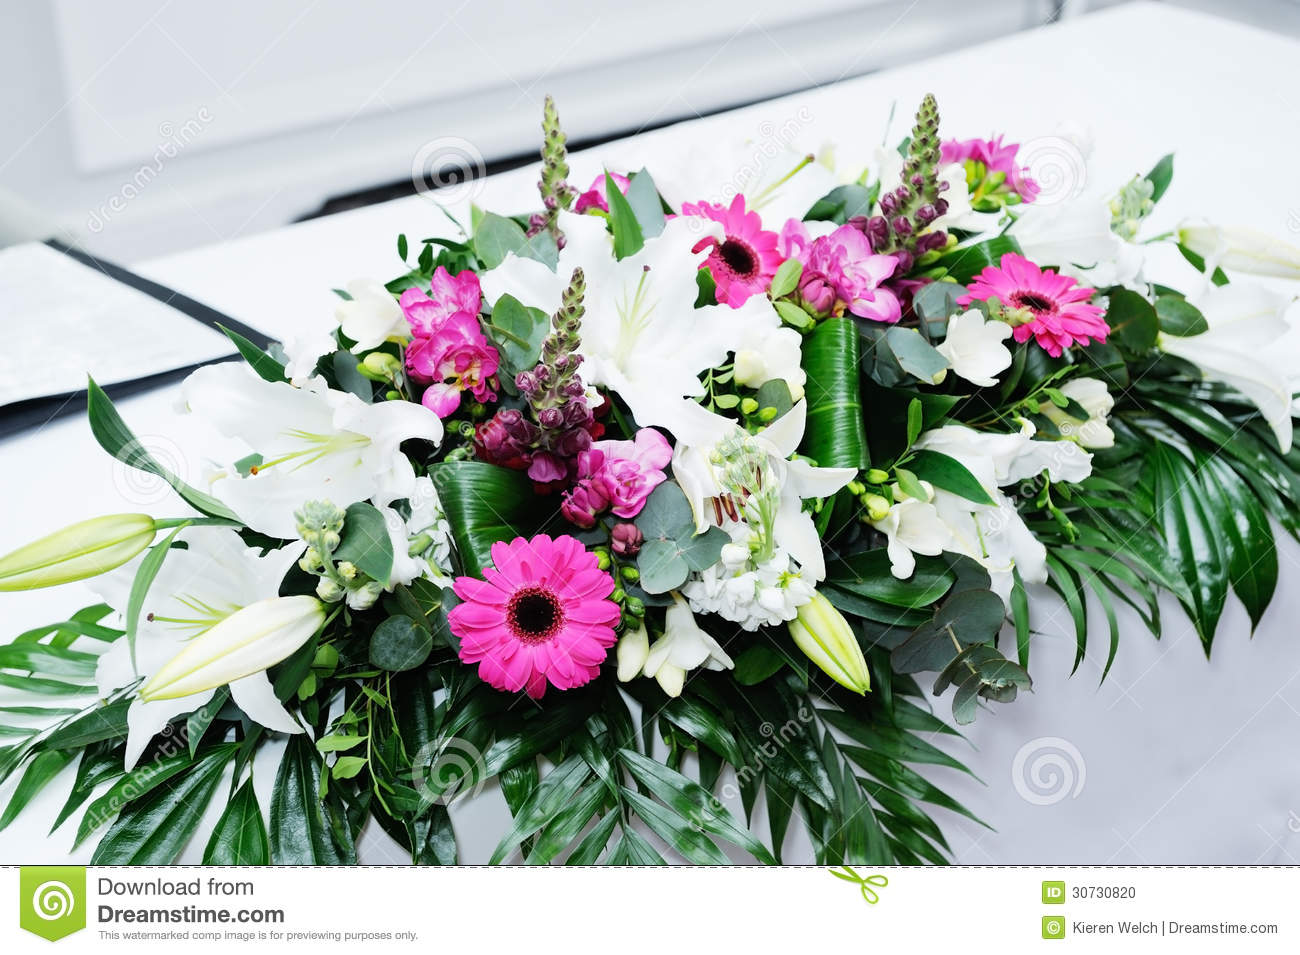 Composition florale en mariage photo stock image 30730820 - Composition florale table mariage ...